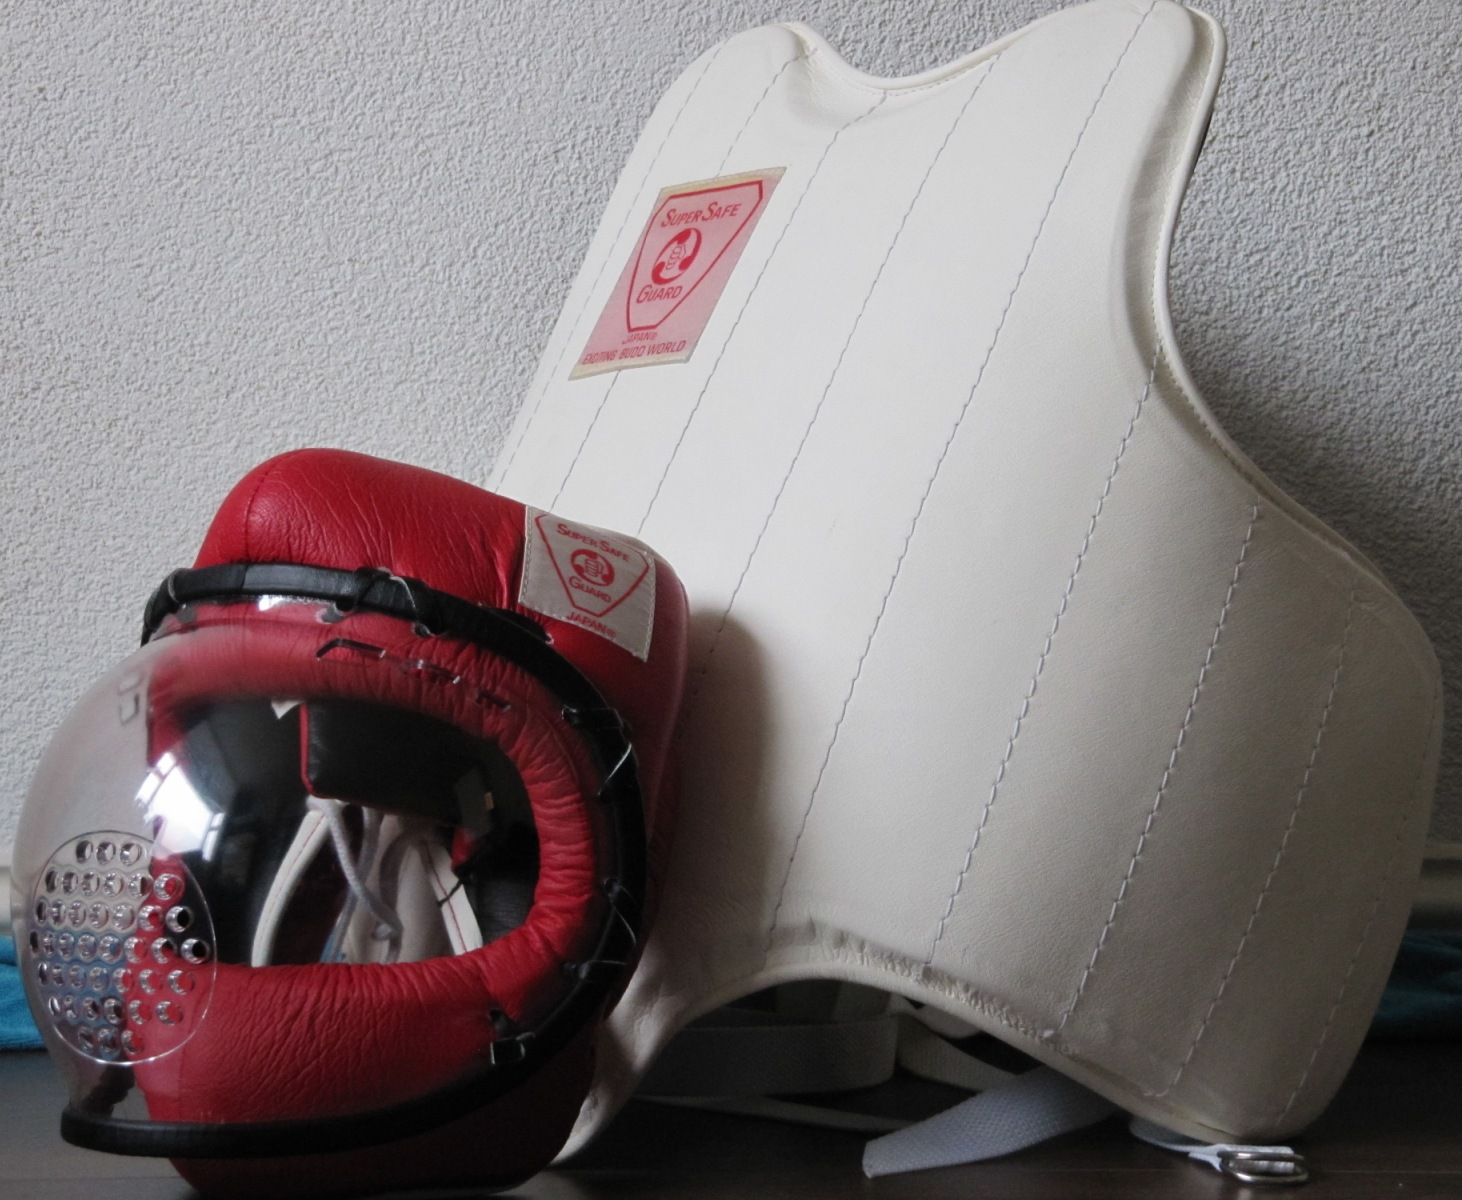 Koshiki Karate's SuperSafe Guard